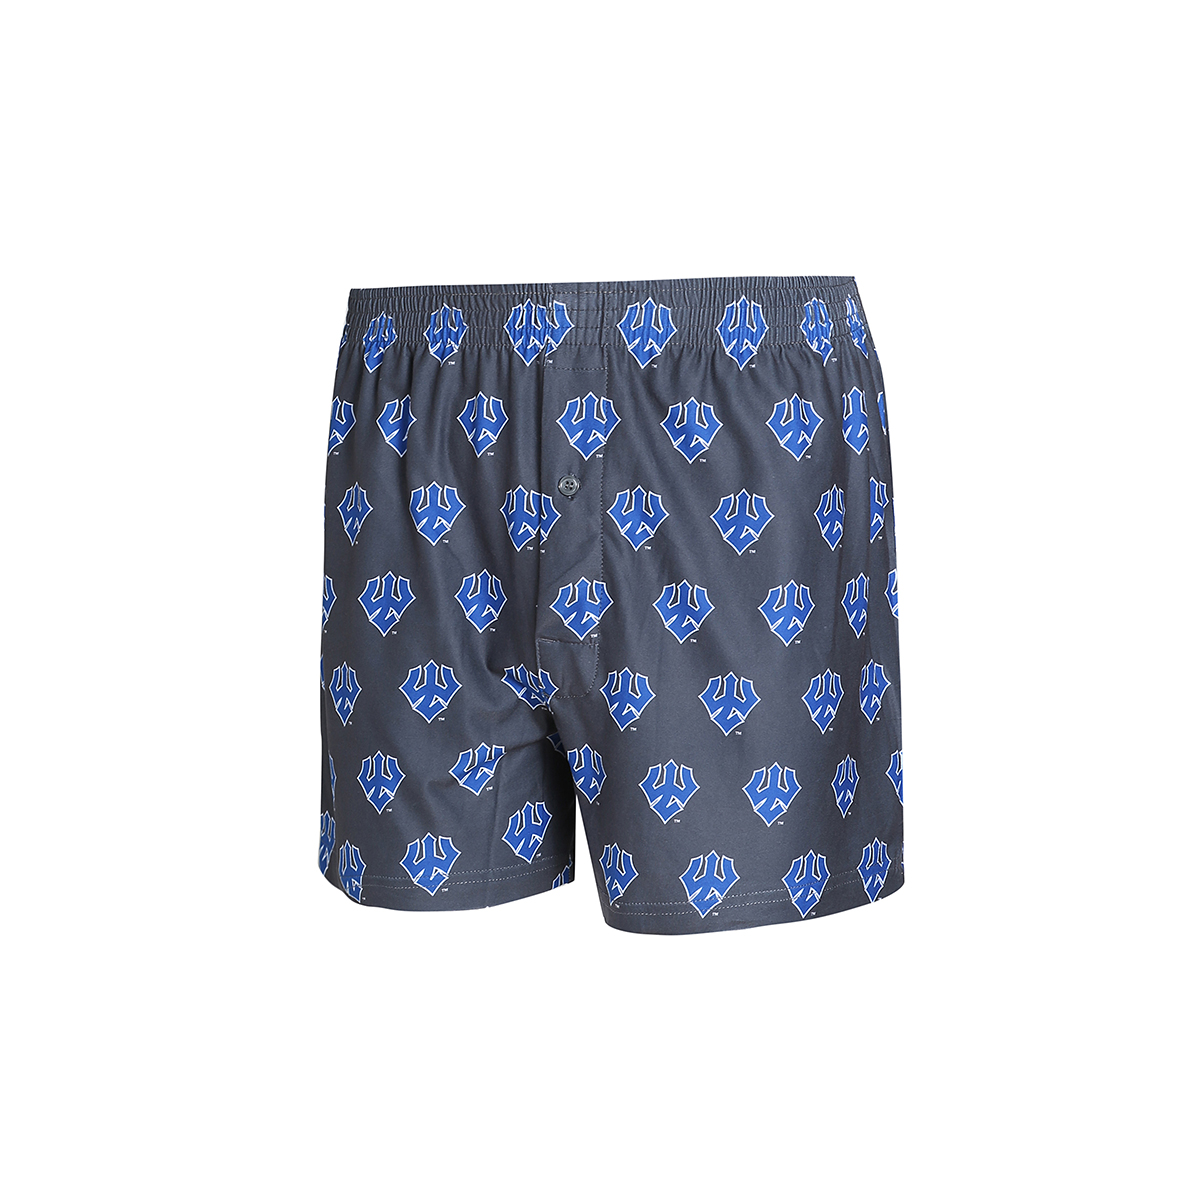 Sublimated Trident Boxers